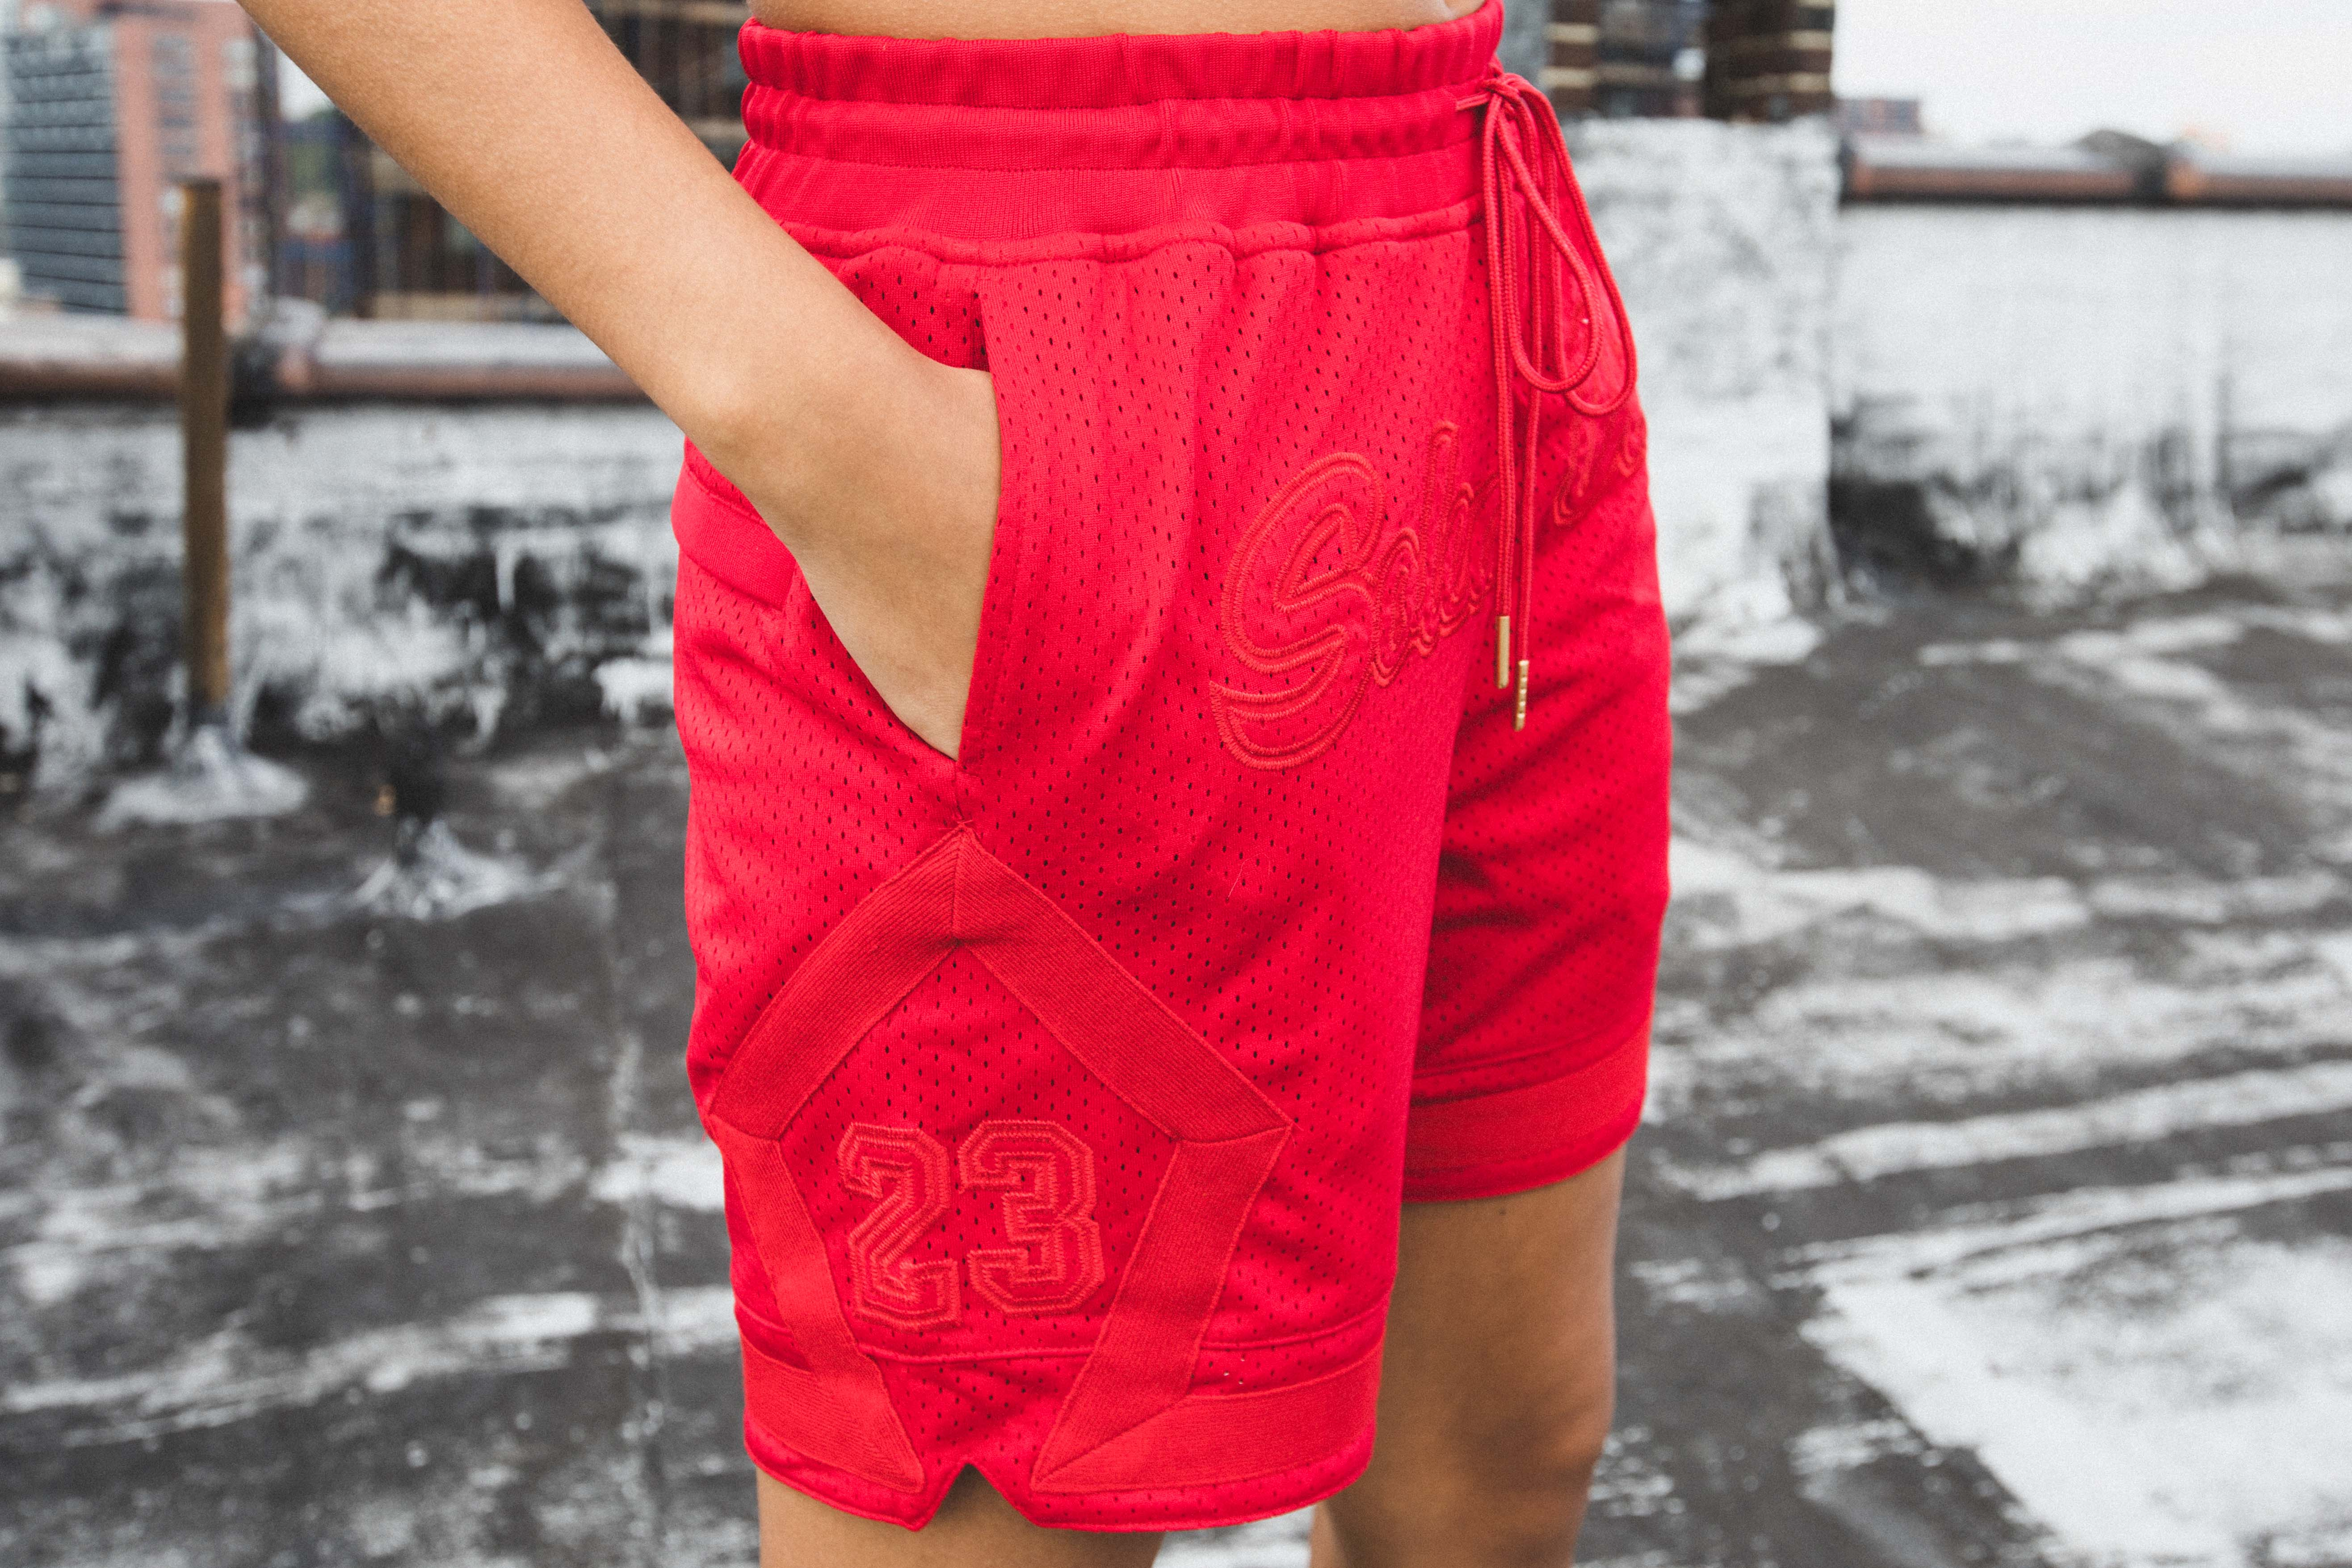 Soled-Out-Basketball-Shorts-Red-Size-M_11976A.jpg